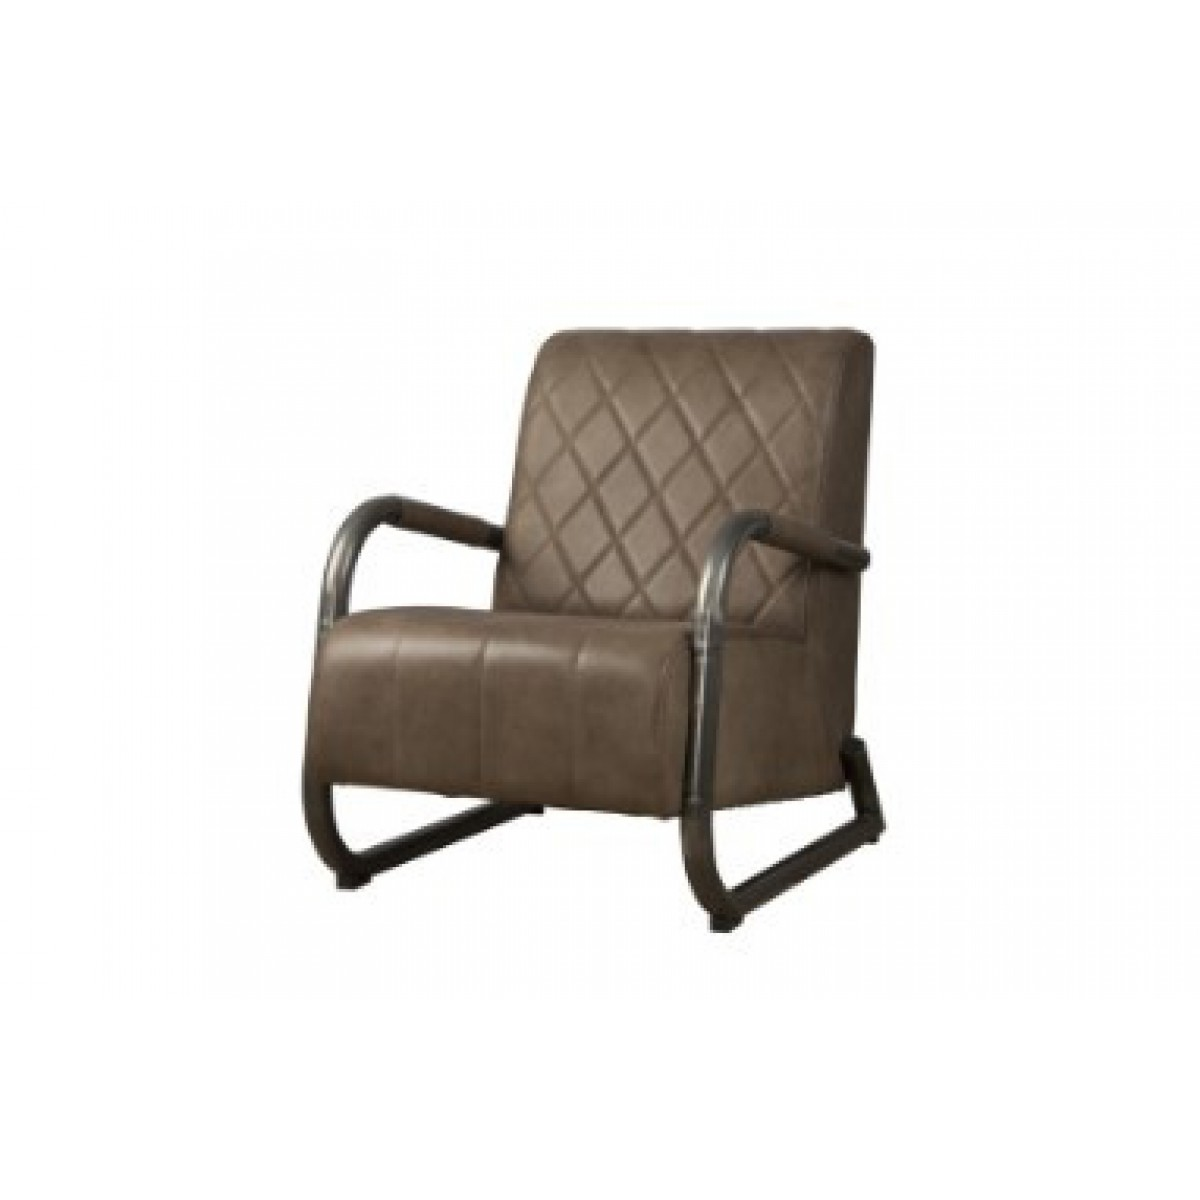 ranch-coffeechair-fauteuil-vintage-leer-taupe-lm0010